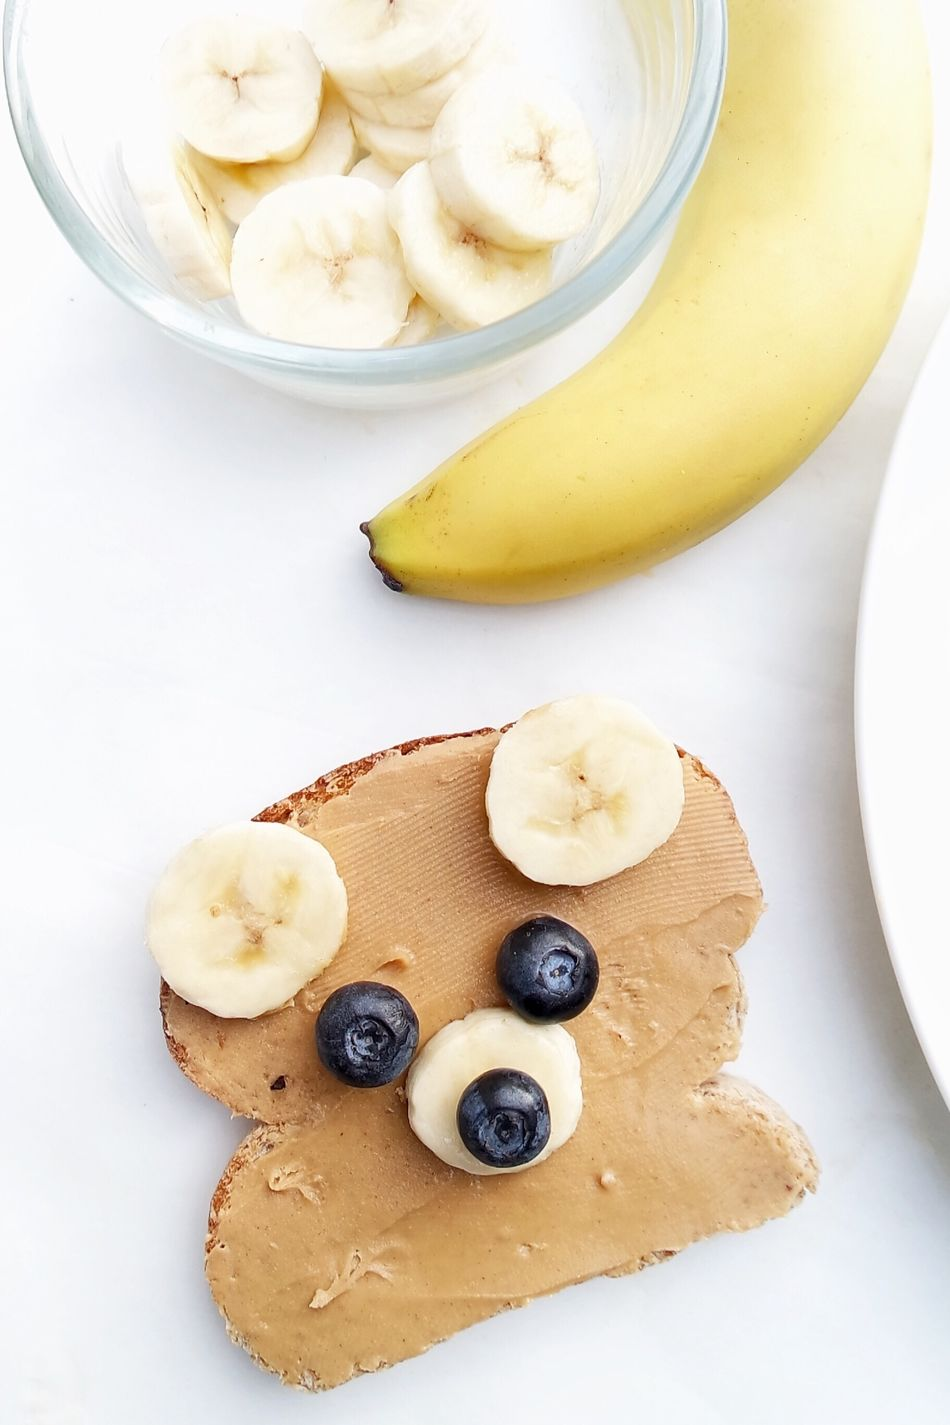 Bear shaped sandwich Banana Food Directly Above Healthy Eating No People Ready-to-eat Healthy Bread Close-up Breakfast Toasted Bread Sandwich High Angle View